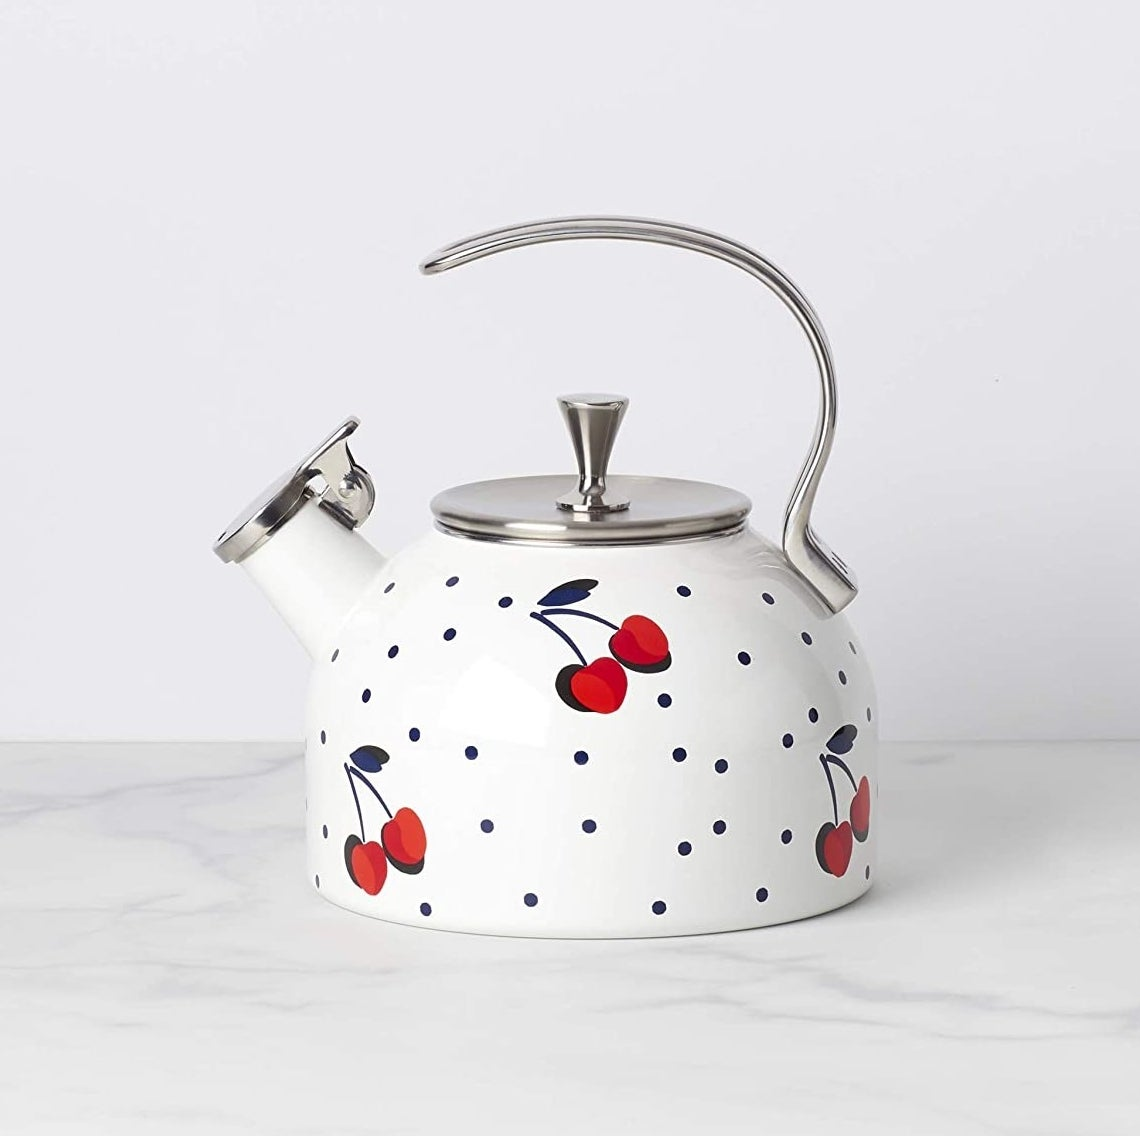 The polka-dotted white kettle which has a cherry pattern